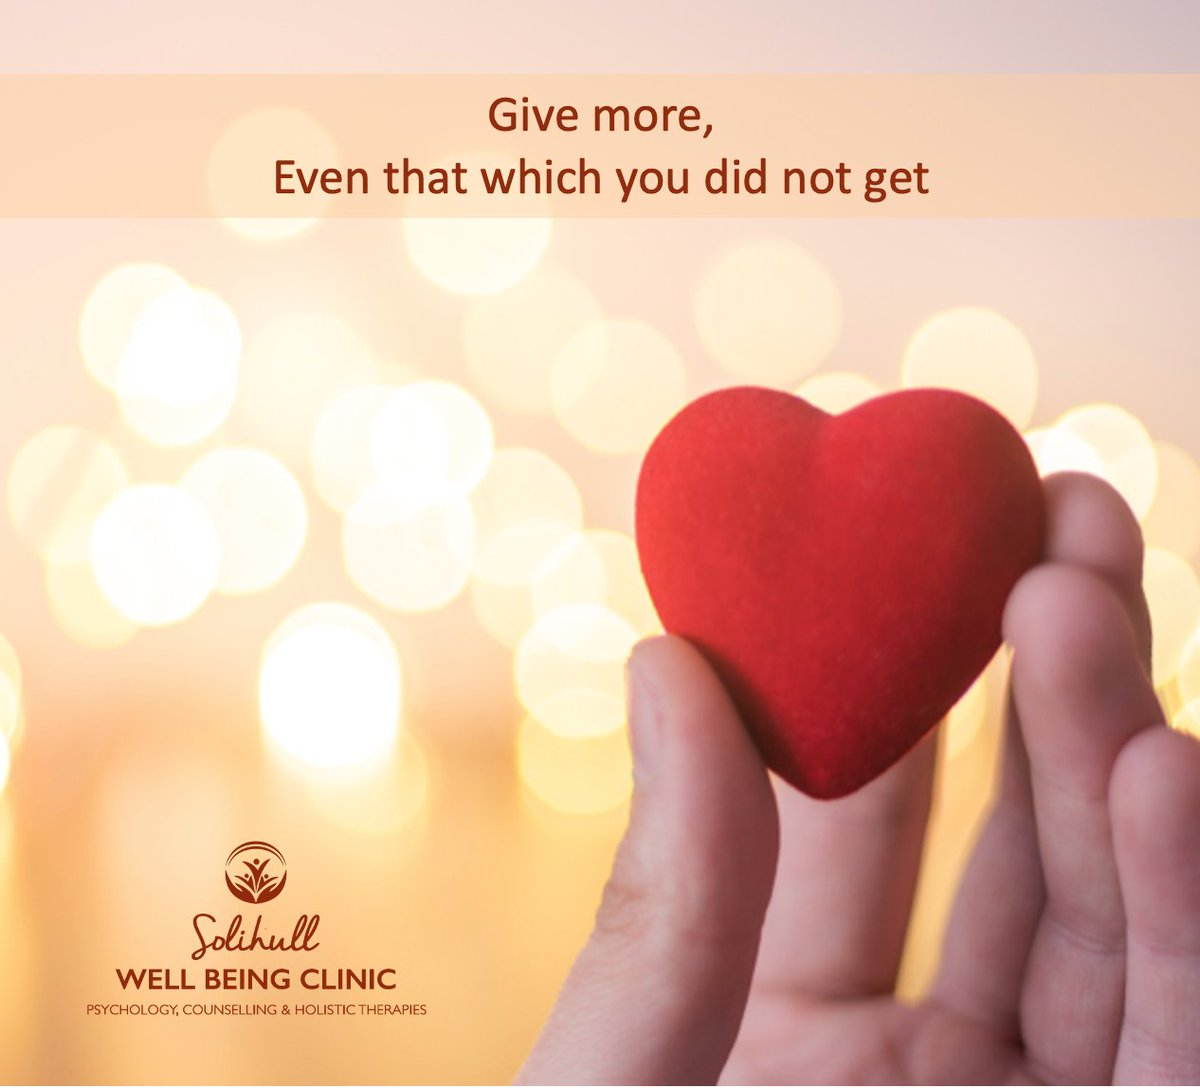 If we choose to focus on what we did not receive, or do not have, we will lead a life of lack. When we give, we develop a sense of richness - after all, if we can share, we remind ourselves we already have more than we can use. #solihullwellbeingclinic #givefreely #liveabundantly https://t.co/3wt5HKeIHo